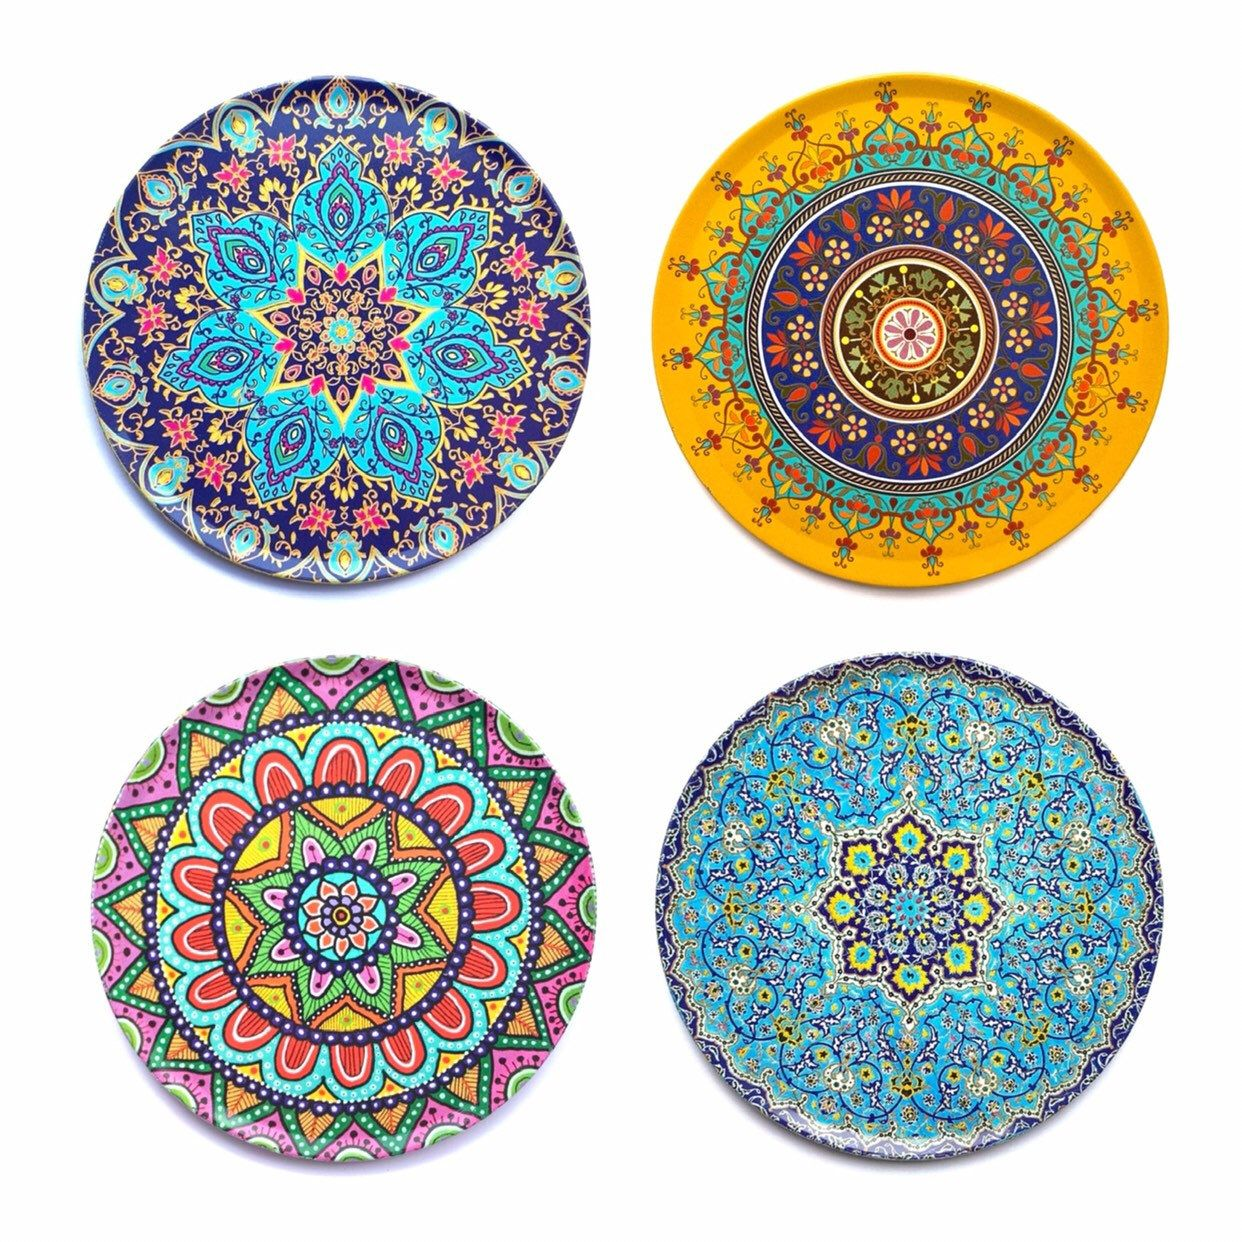 Set Of 4 Premium Mandala Coasters Decorative Coasters For Glass Cups Vases Candles On Dining Table Tin Cork Coasters Christmas Gift With Images Cork Coasters Coasters Christmas Gifts